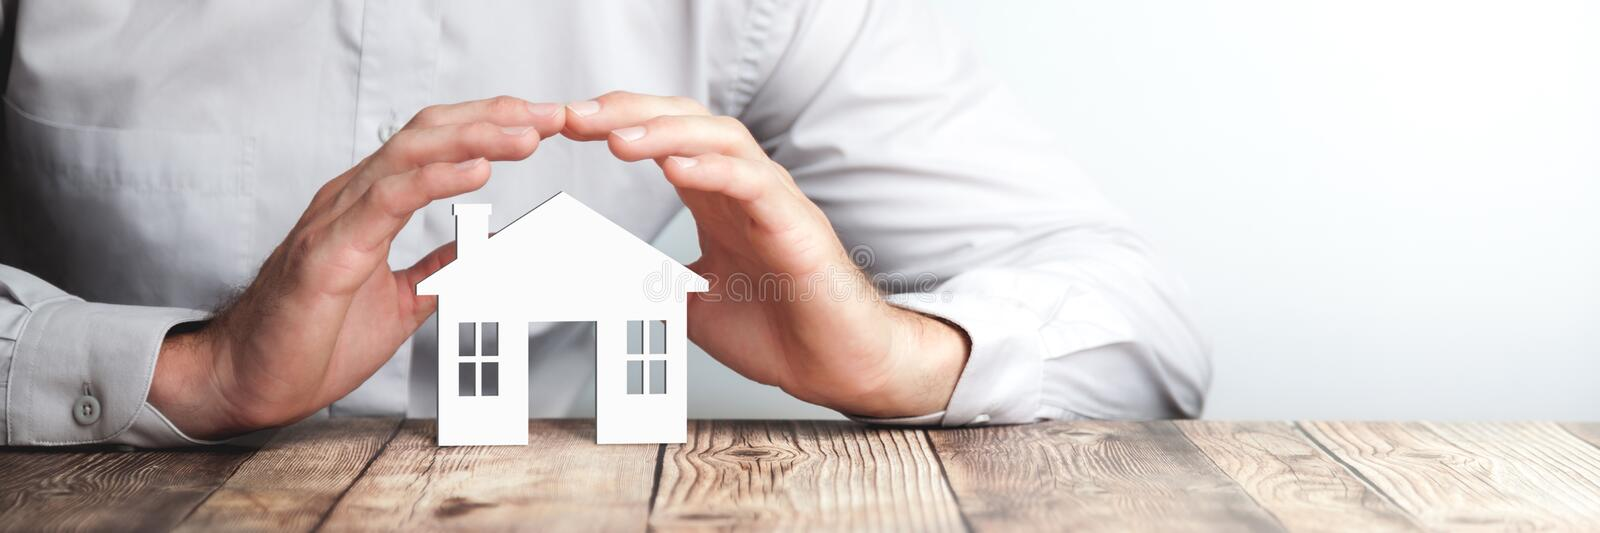 Protecting Hands Over House royalty free stock photography